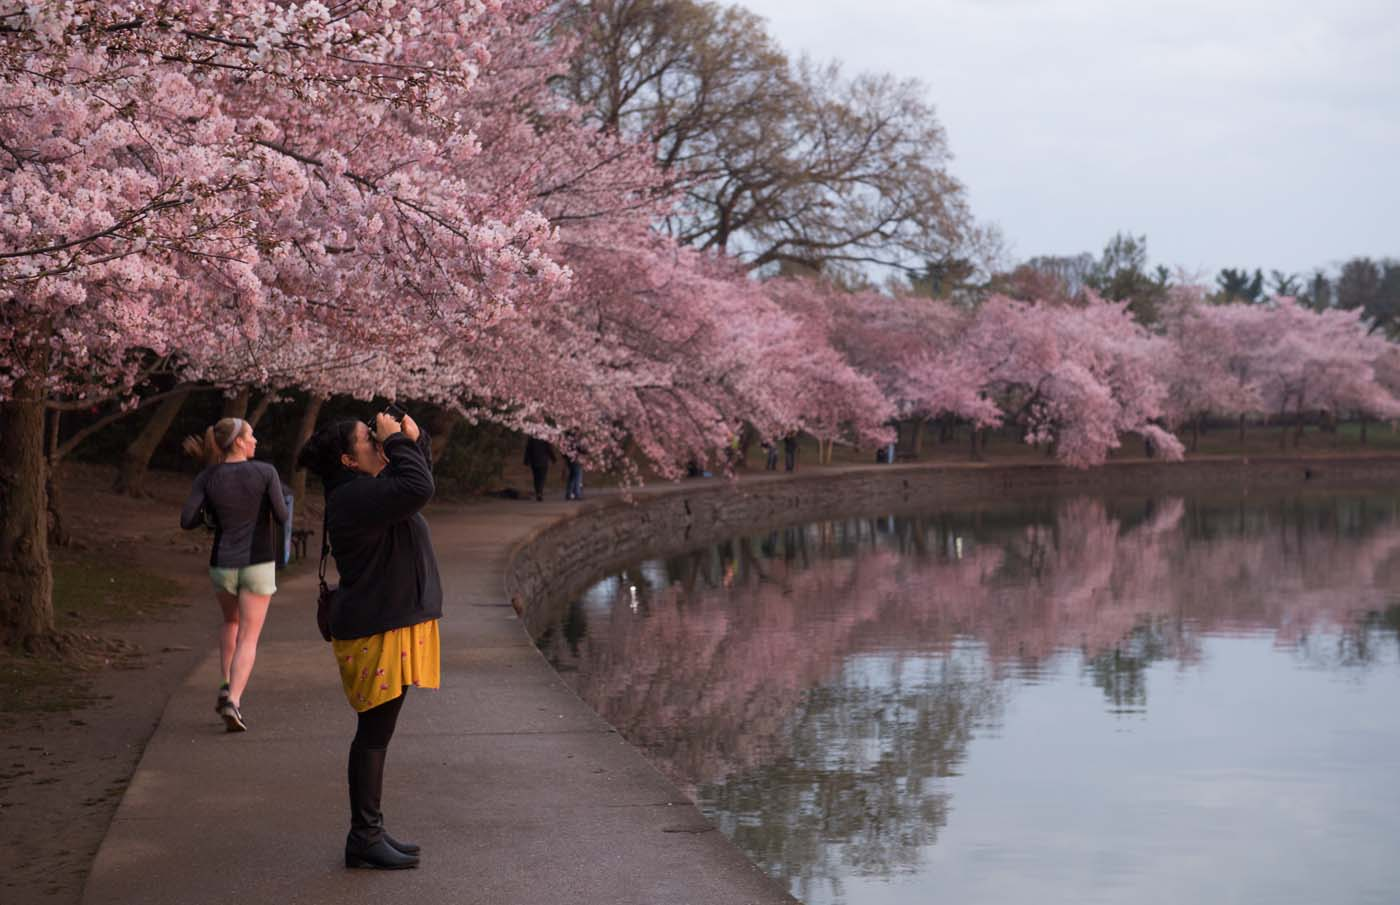 A woman photographs the Cherry Blossom trees as they bloom around the Tidal Basin at sunrise in Washington, DC, April 4, 2018. / AFP PHOTO / SAUL LOEB